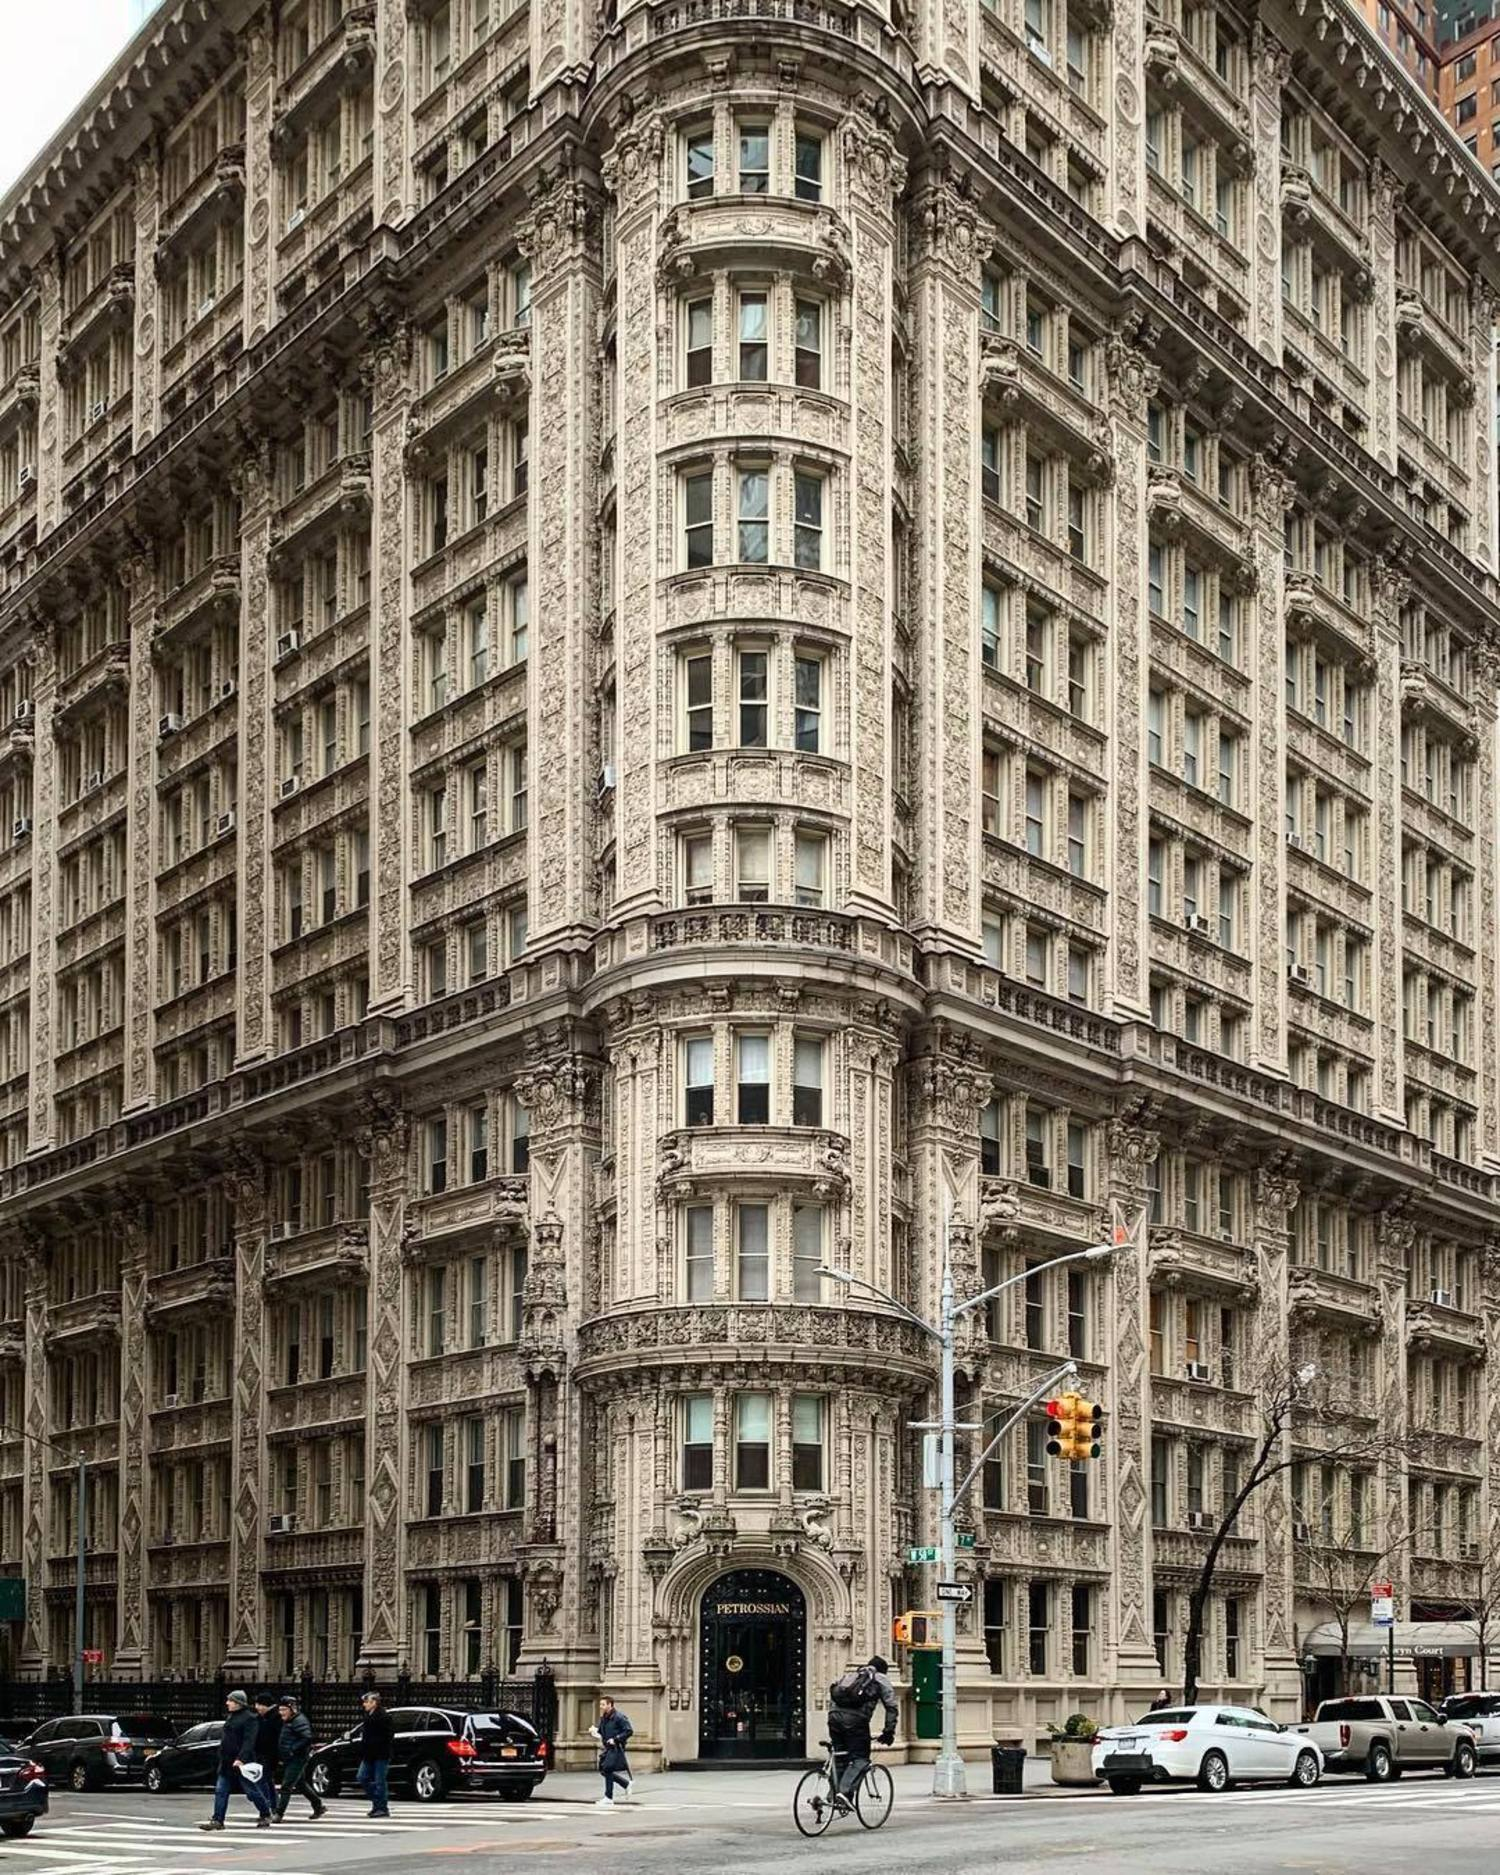 Alwyn Court, Midtown, Manhattan. Photo via @madufault #viewingnyc #nyc #newyork #newyorkcity #alwyncourt